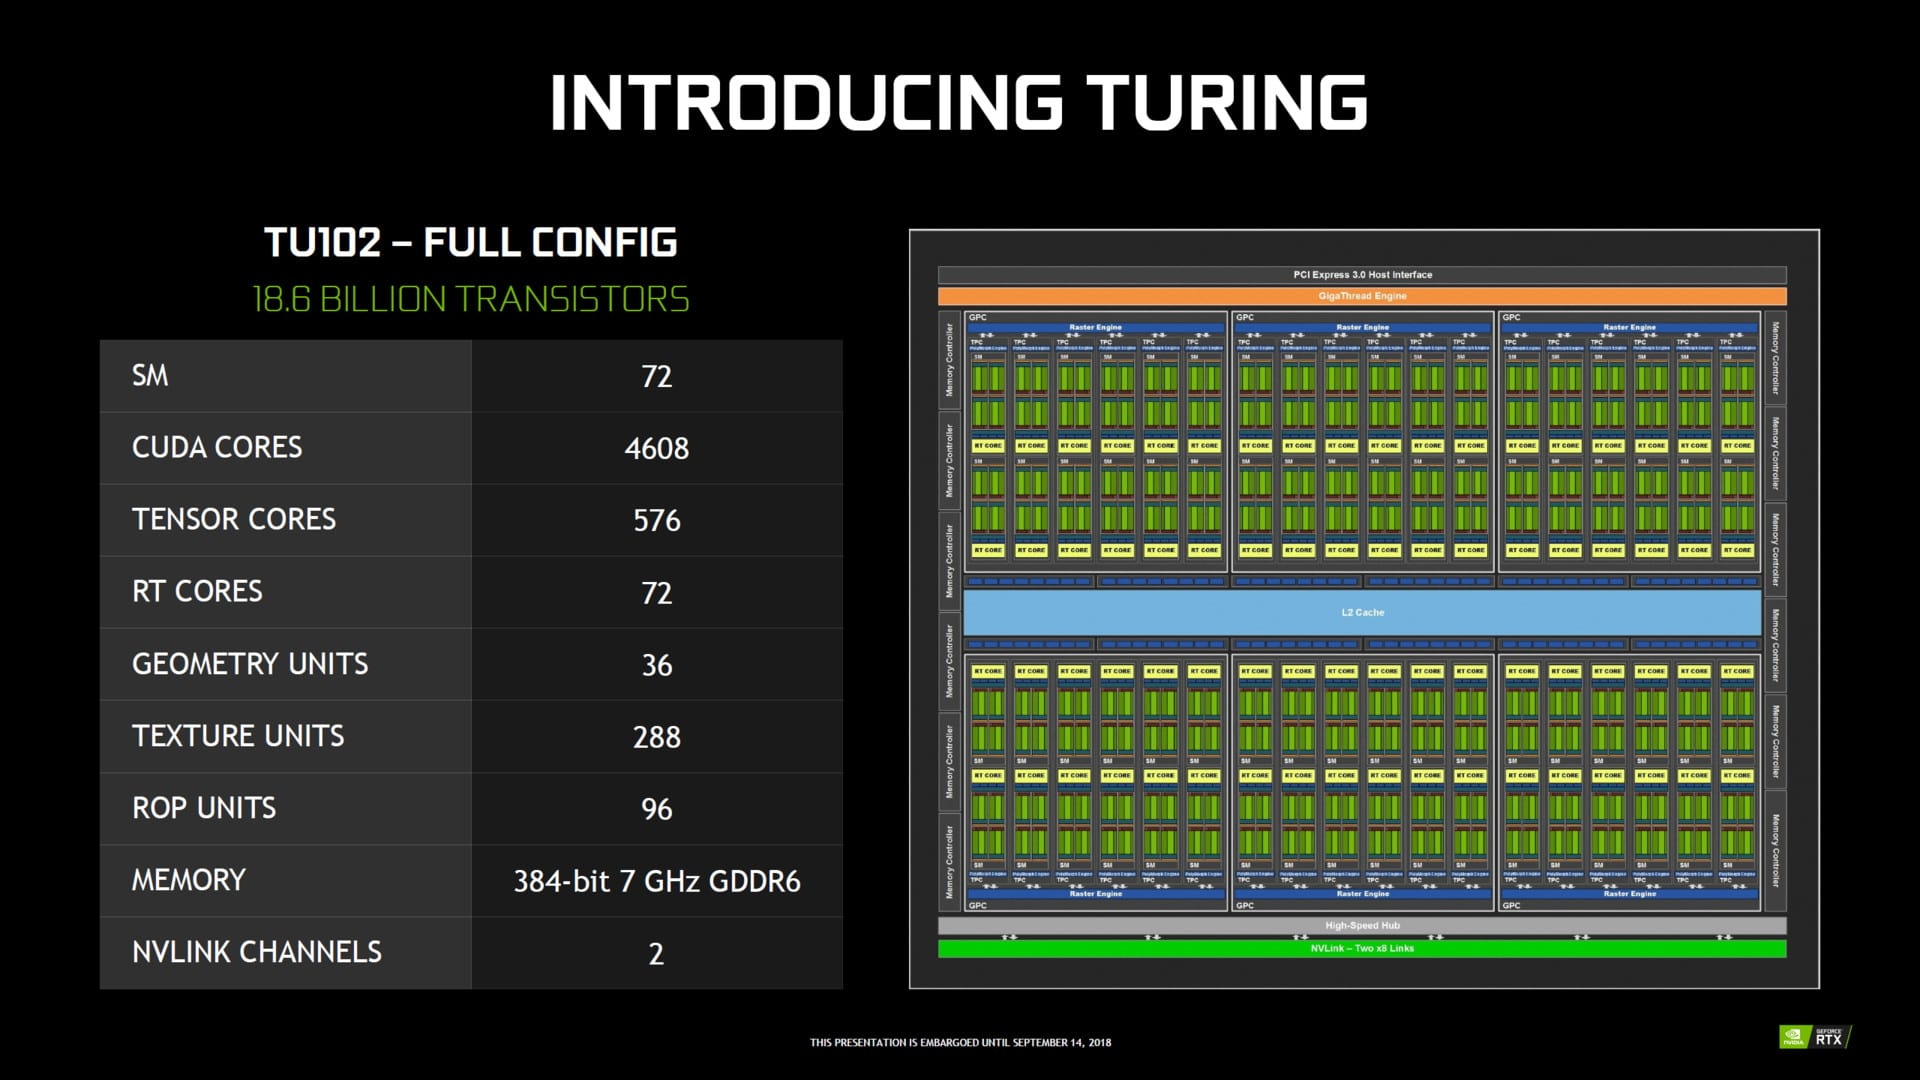 NVIDIA GeForce RTX 2080 Ti vs GeForce GTX 1080 Ti: Turing vs Pascal Flagship